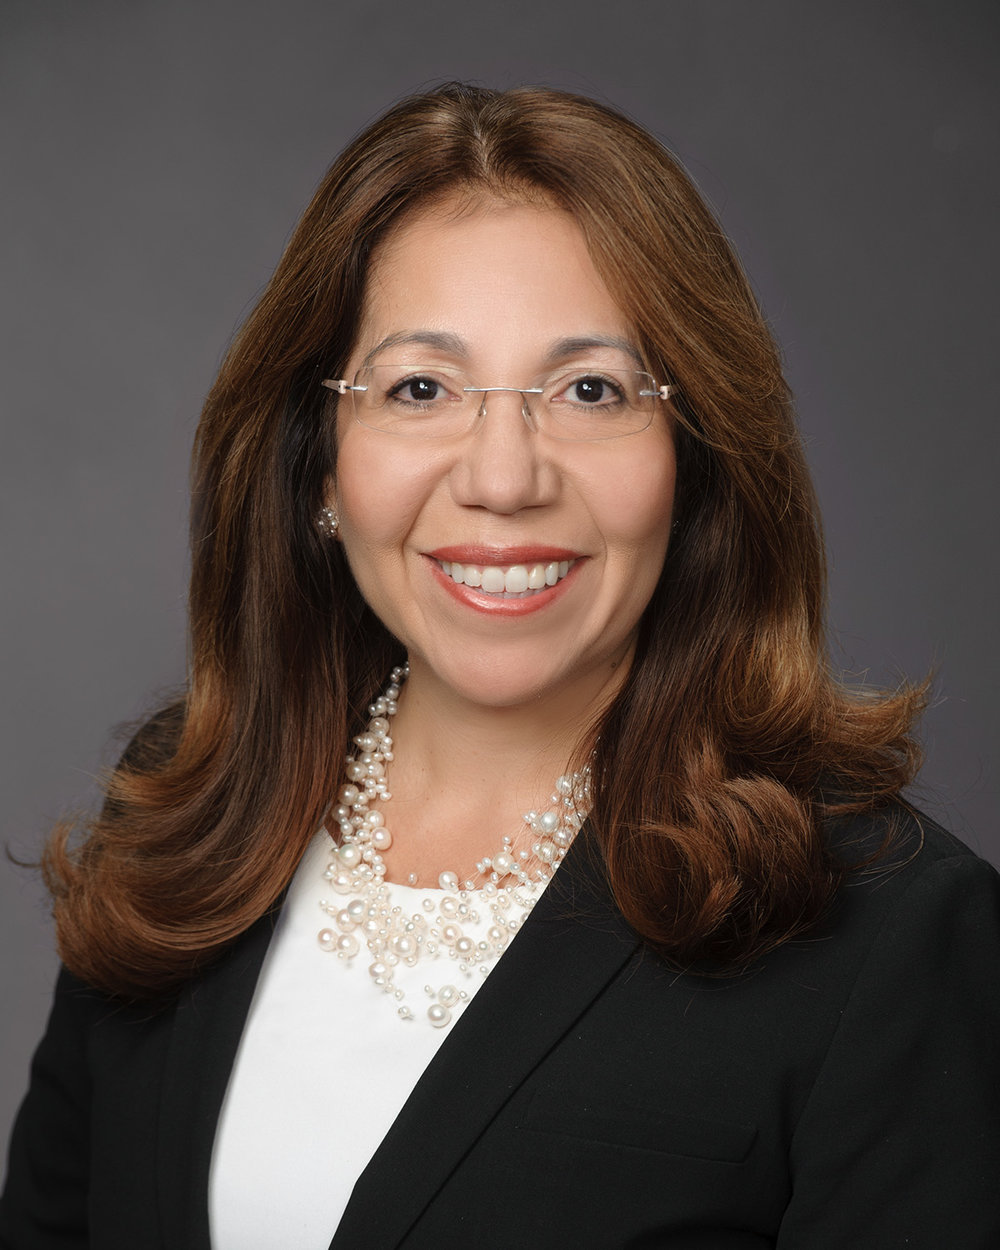 Connie Delgado - CEO of Delgado Government Affairs